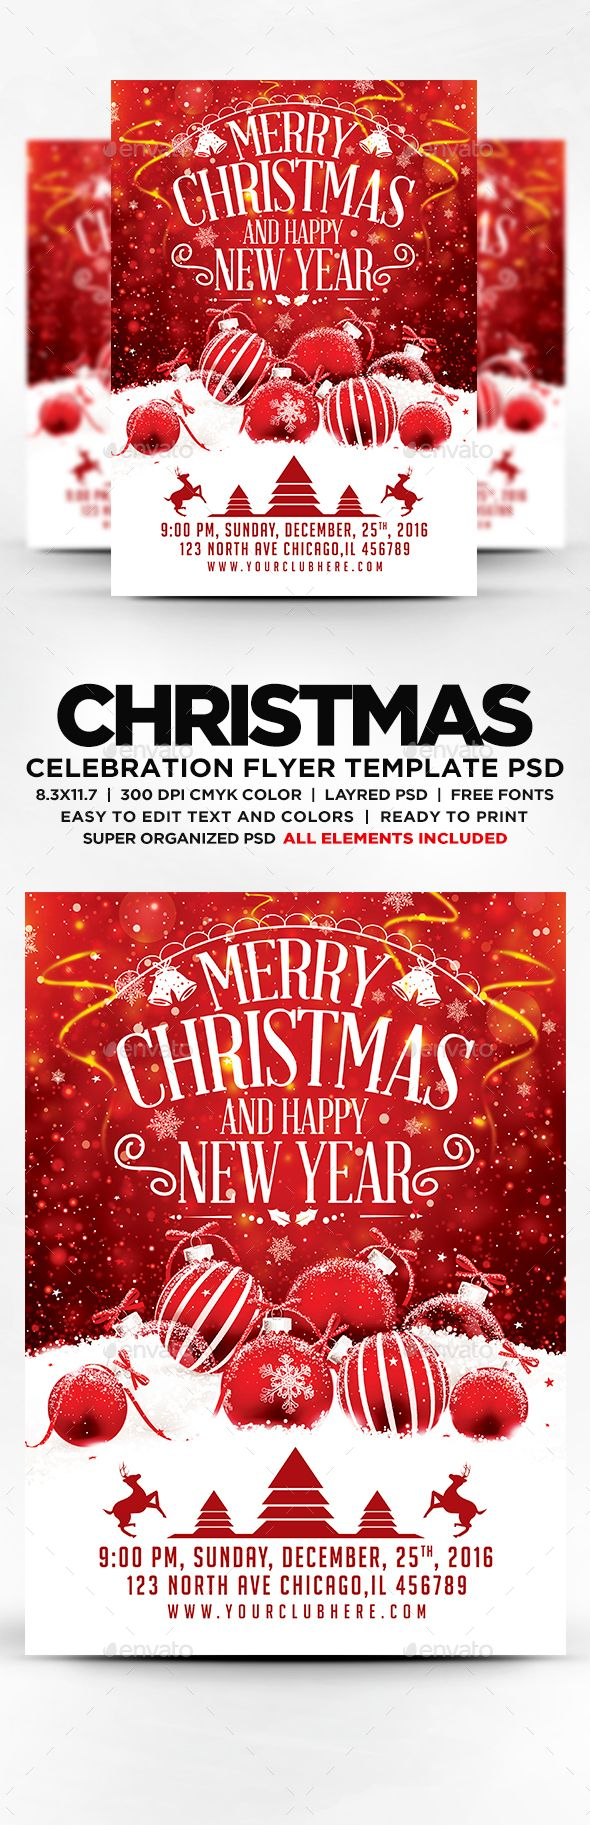 Merry Christmas And Happy New Year Flyer Template Psd  Christmas